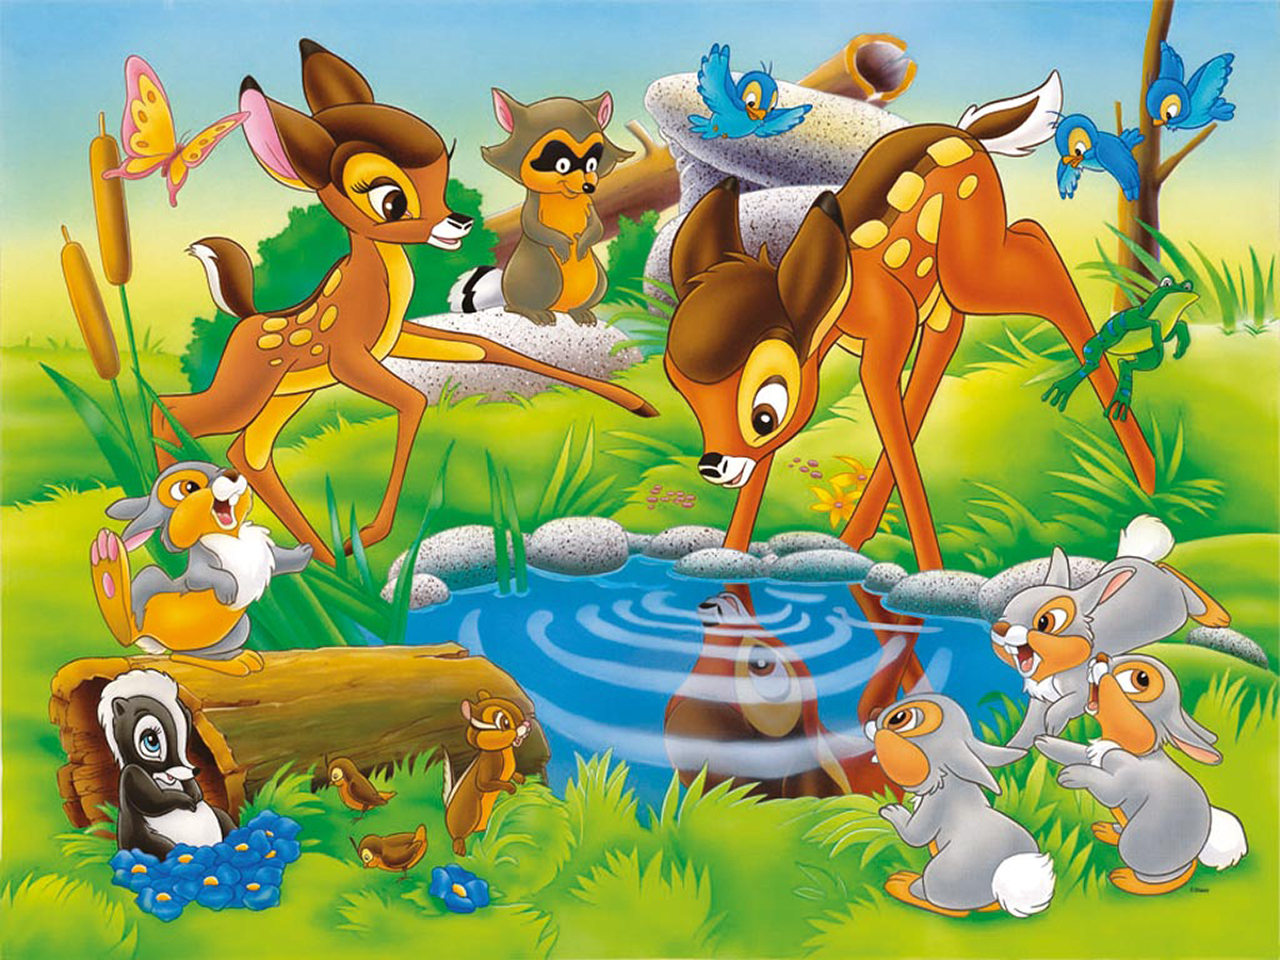 Bambi Picture to Download Freely | Kids Online World Blog